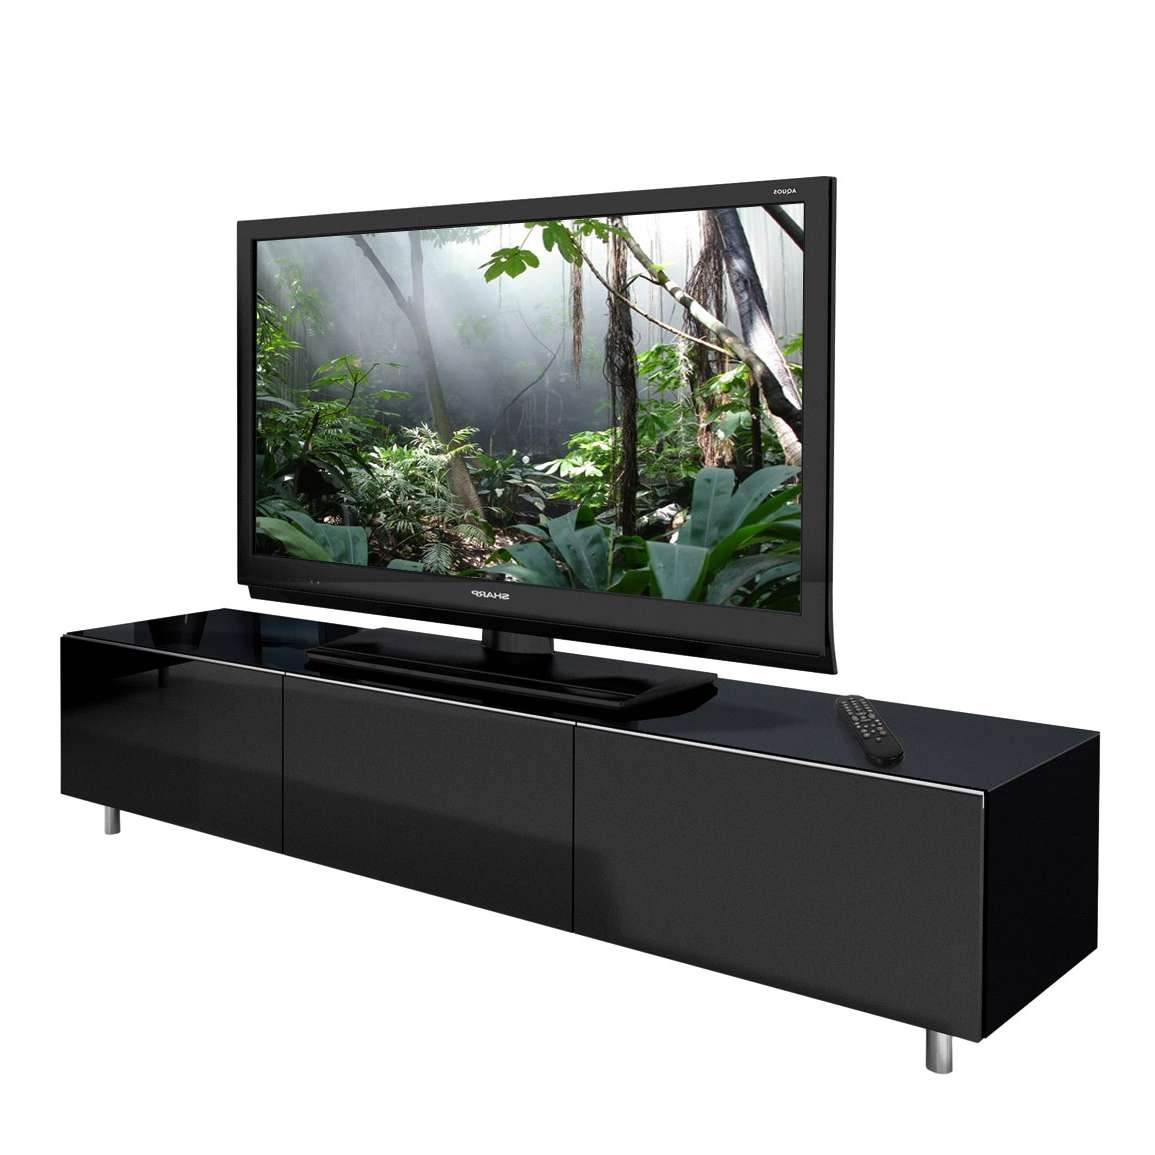 Spectral Just Racks Jrl1650S Gloss Black Tv Cabinet – Just Racks For Long Black Tv Stands (View 15 of 15)